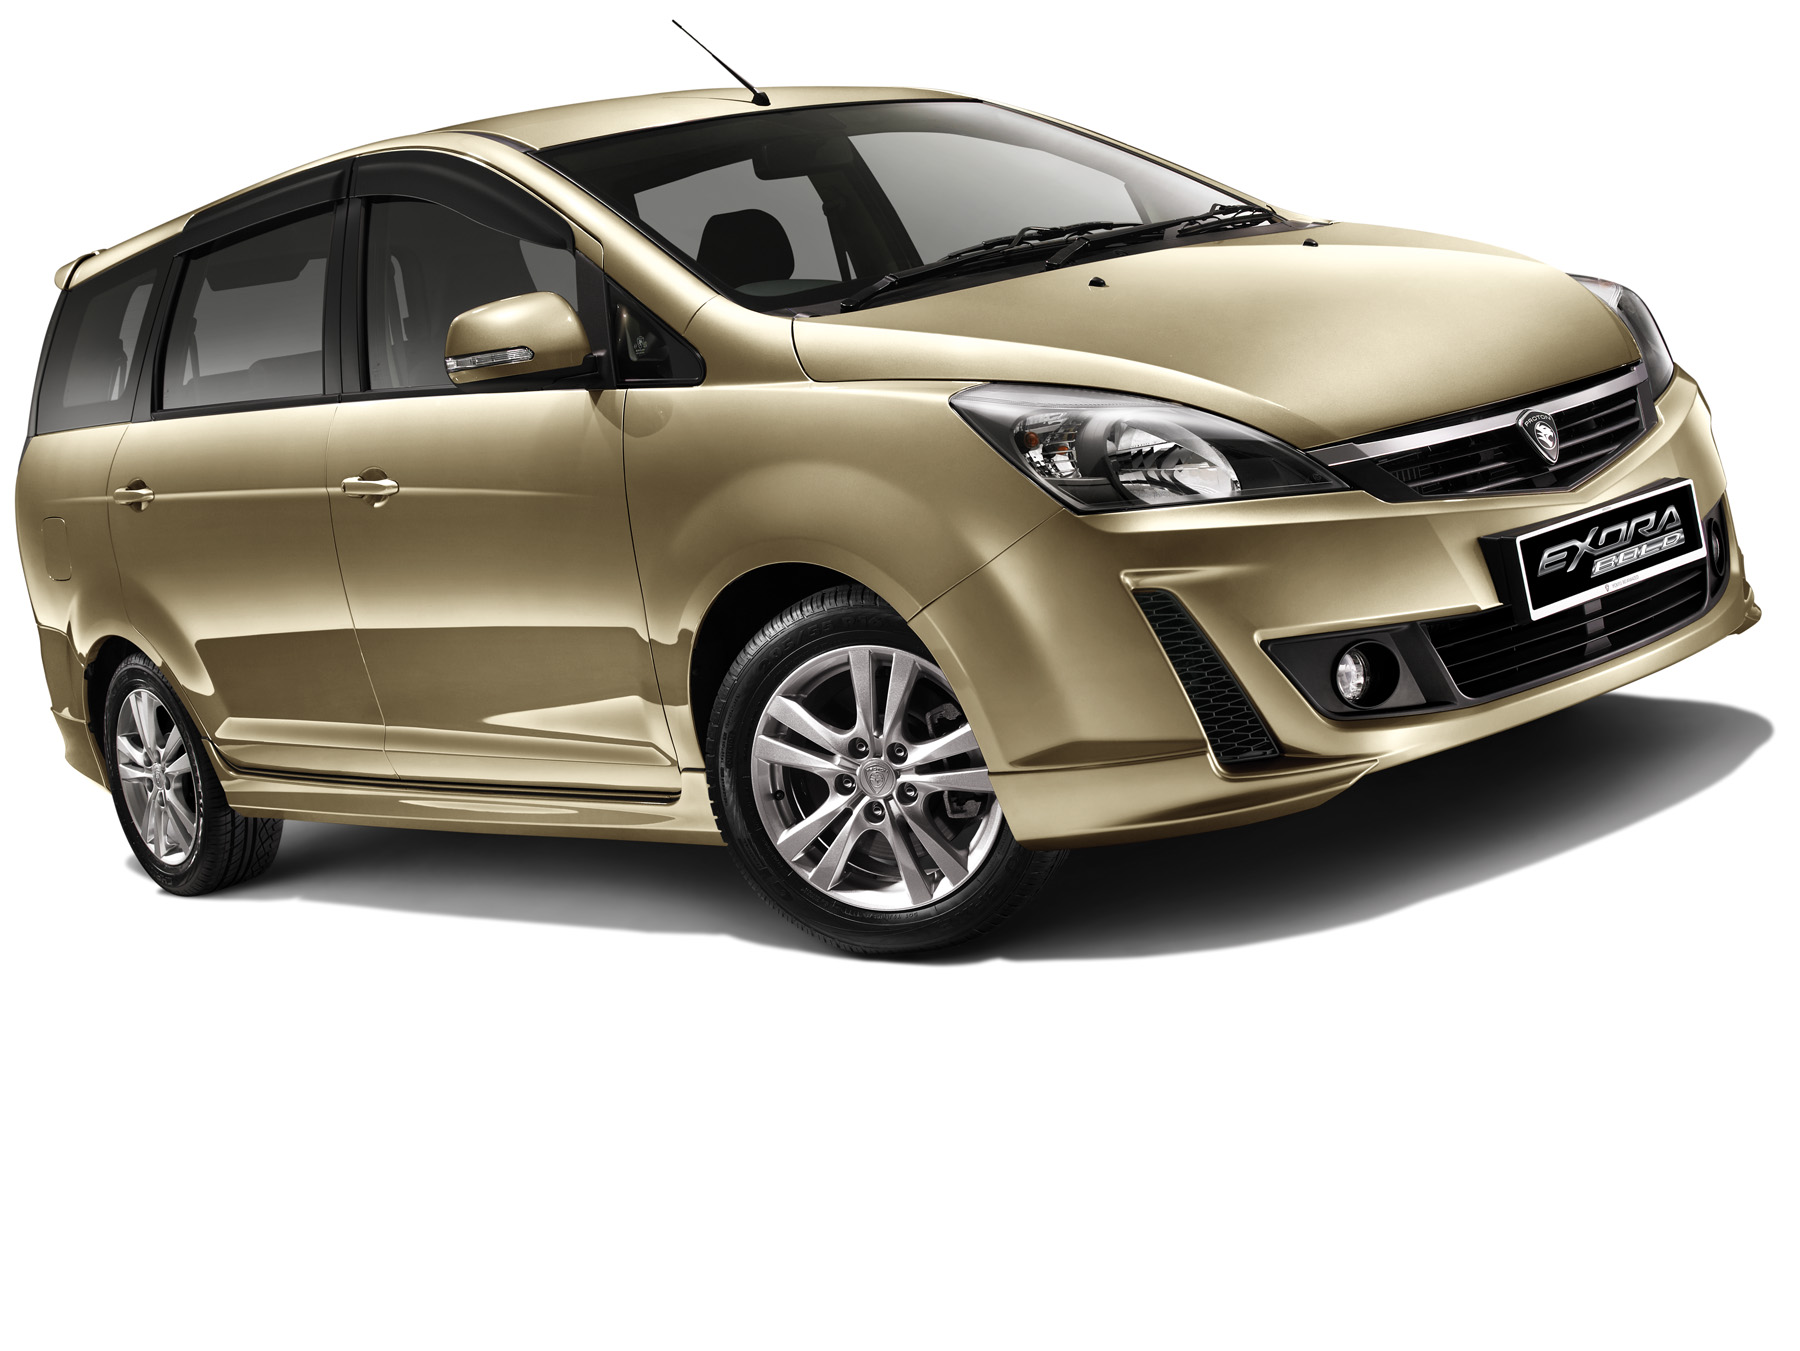 Proton car price list in malaysia 2015